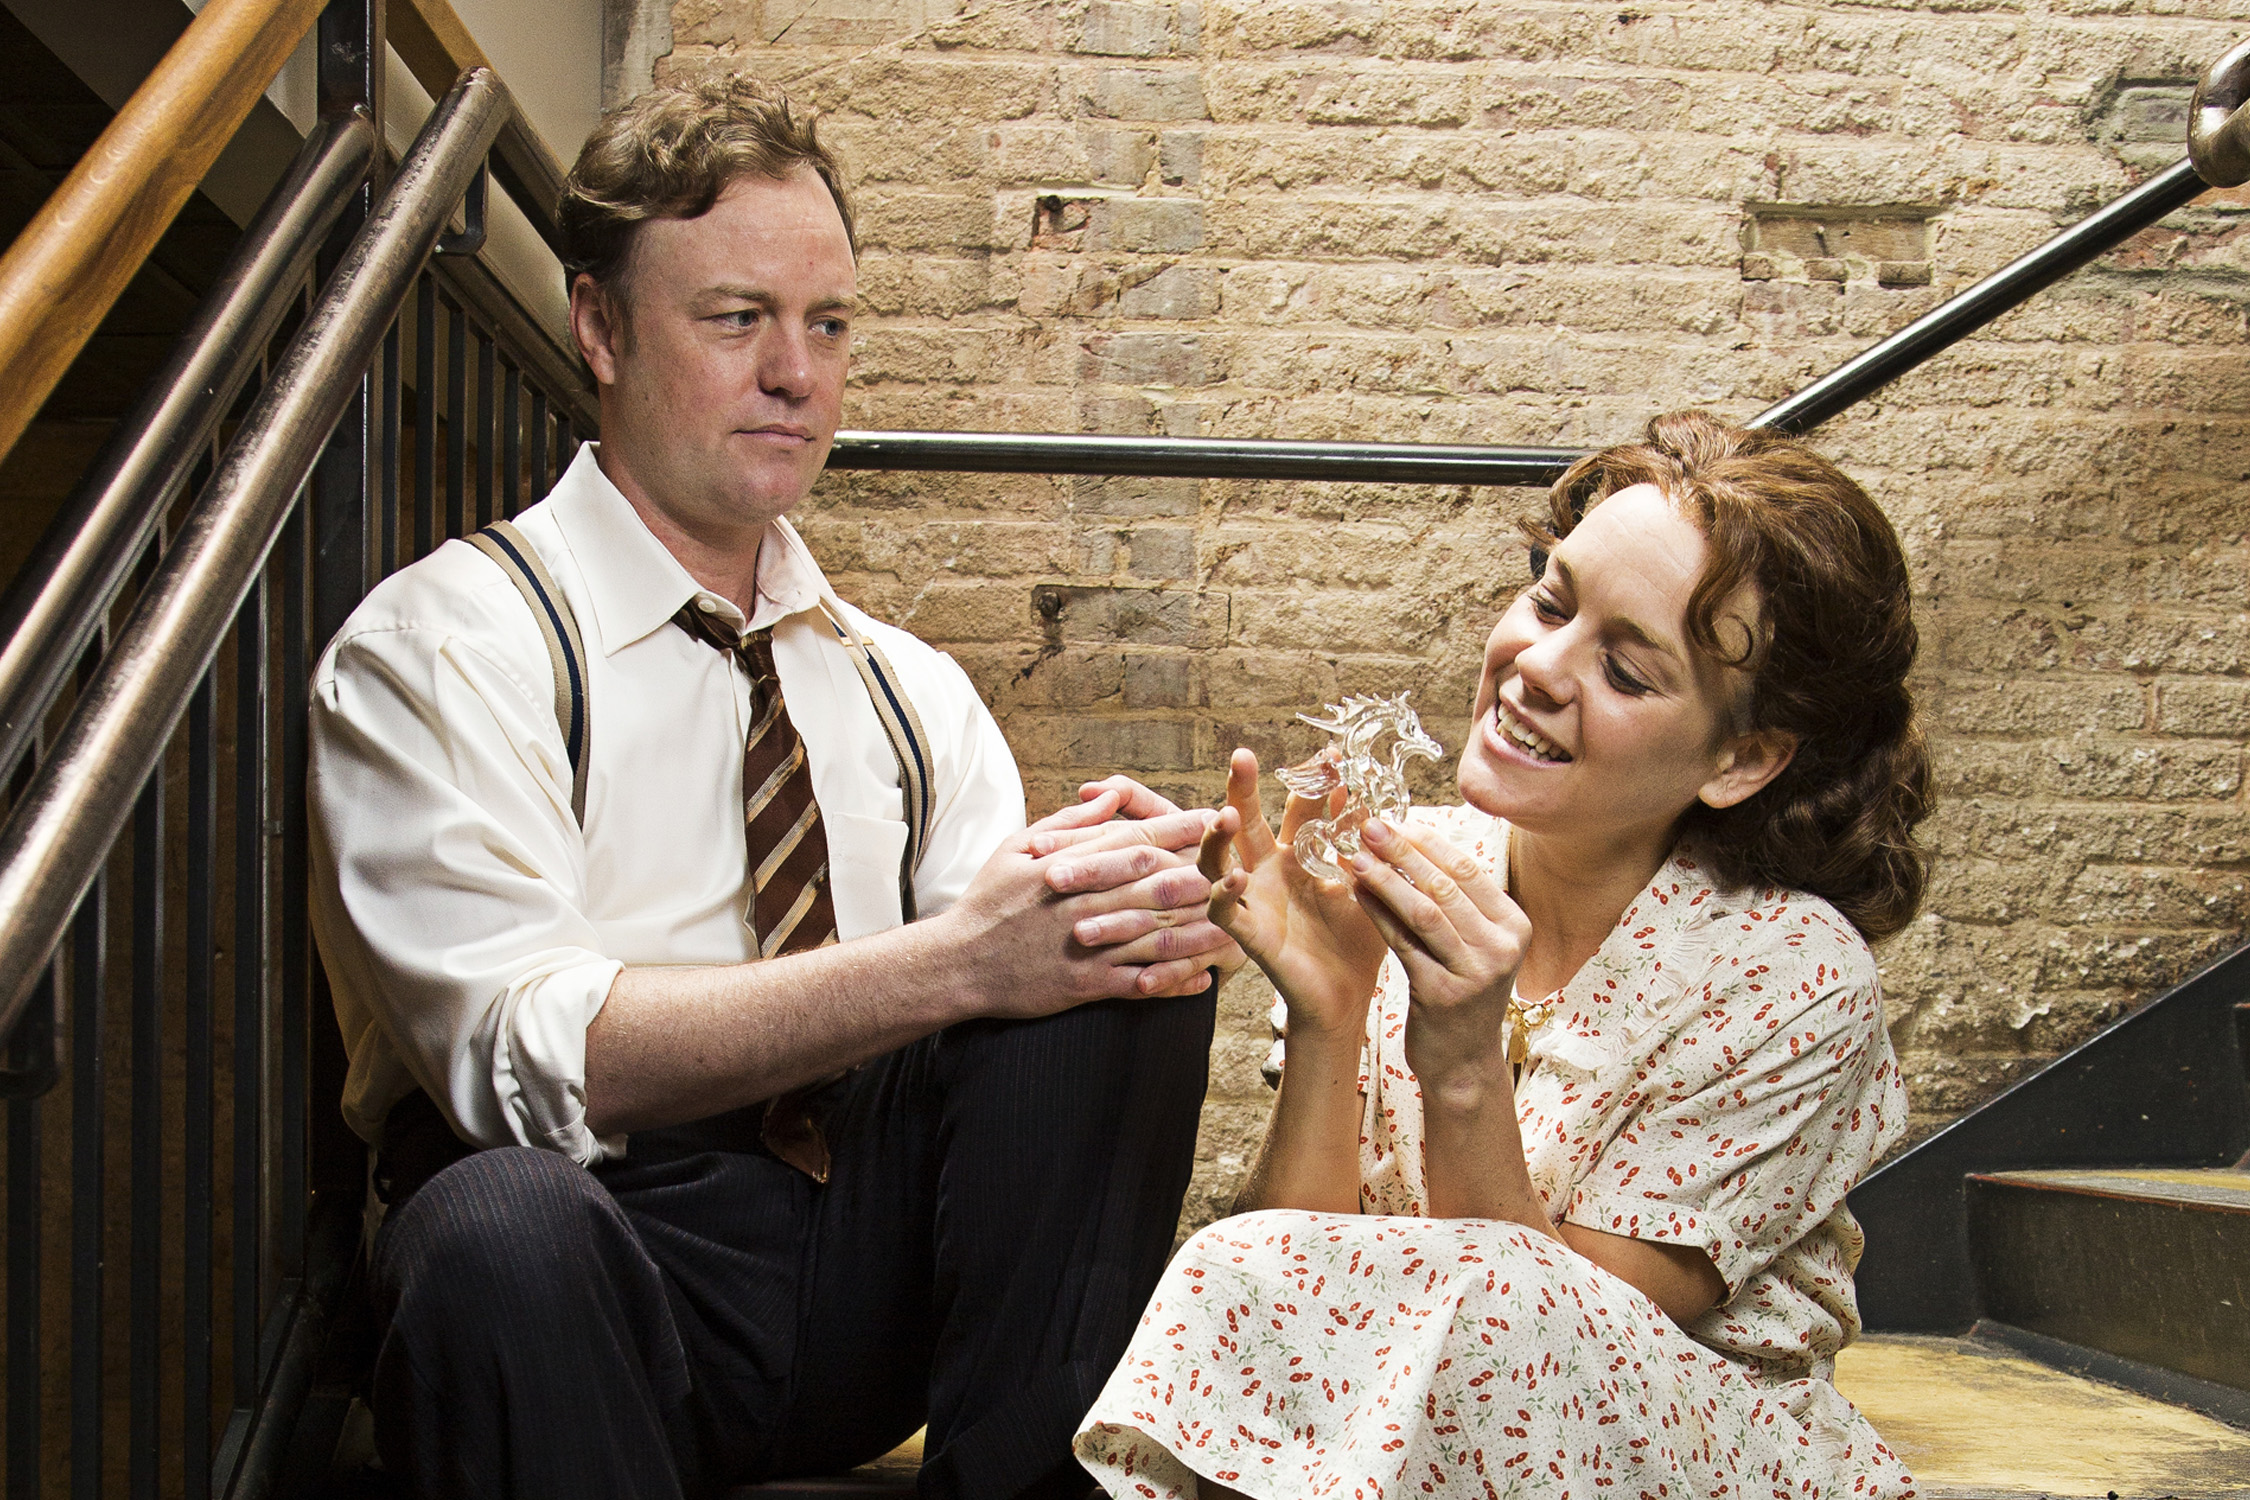 Ford's stages first Tennessee Williams in haunting 'Menagerie'